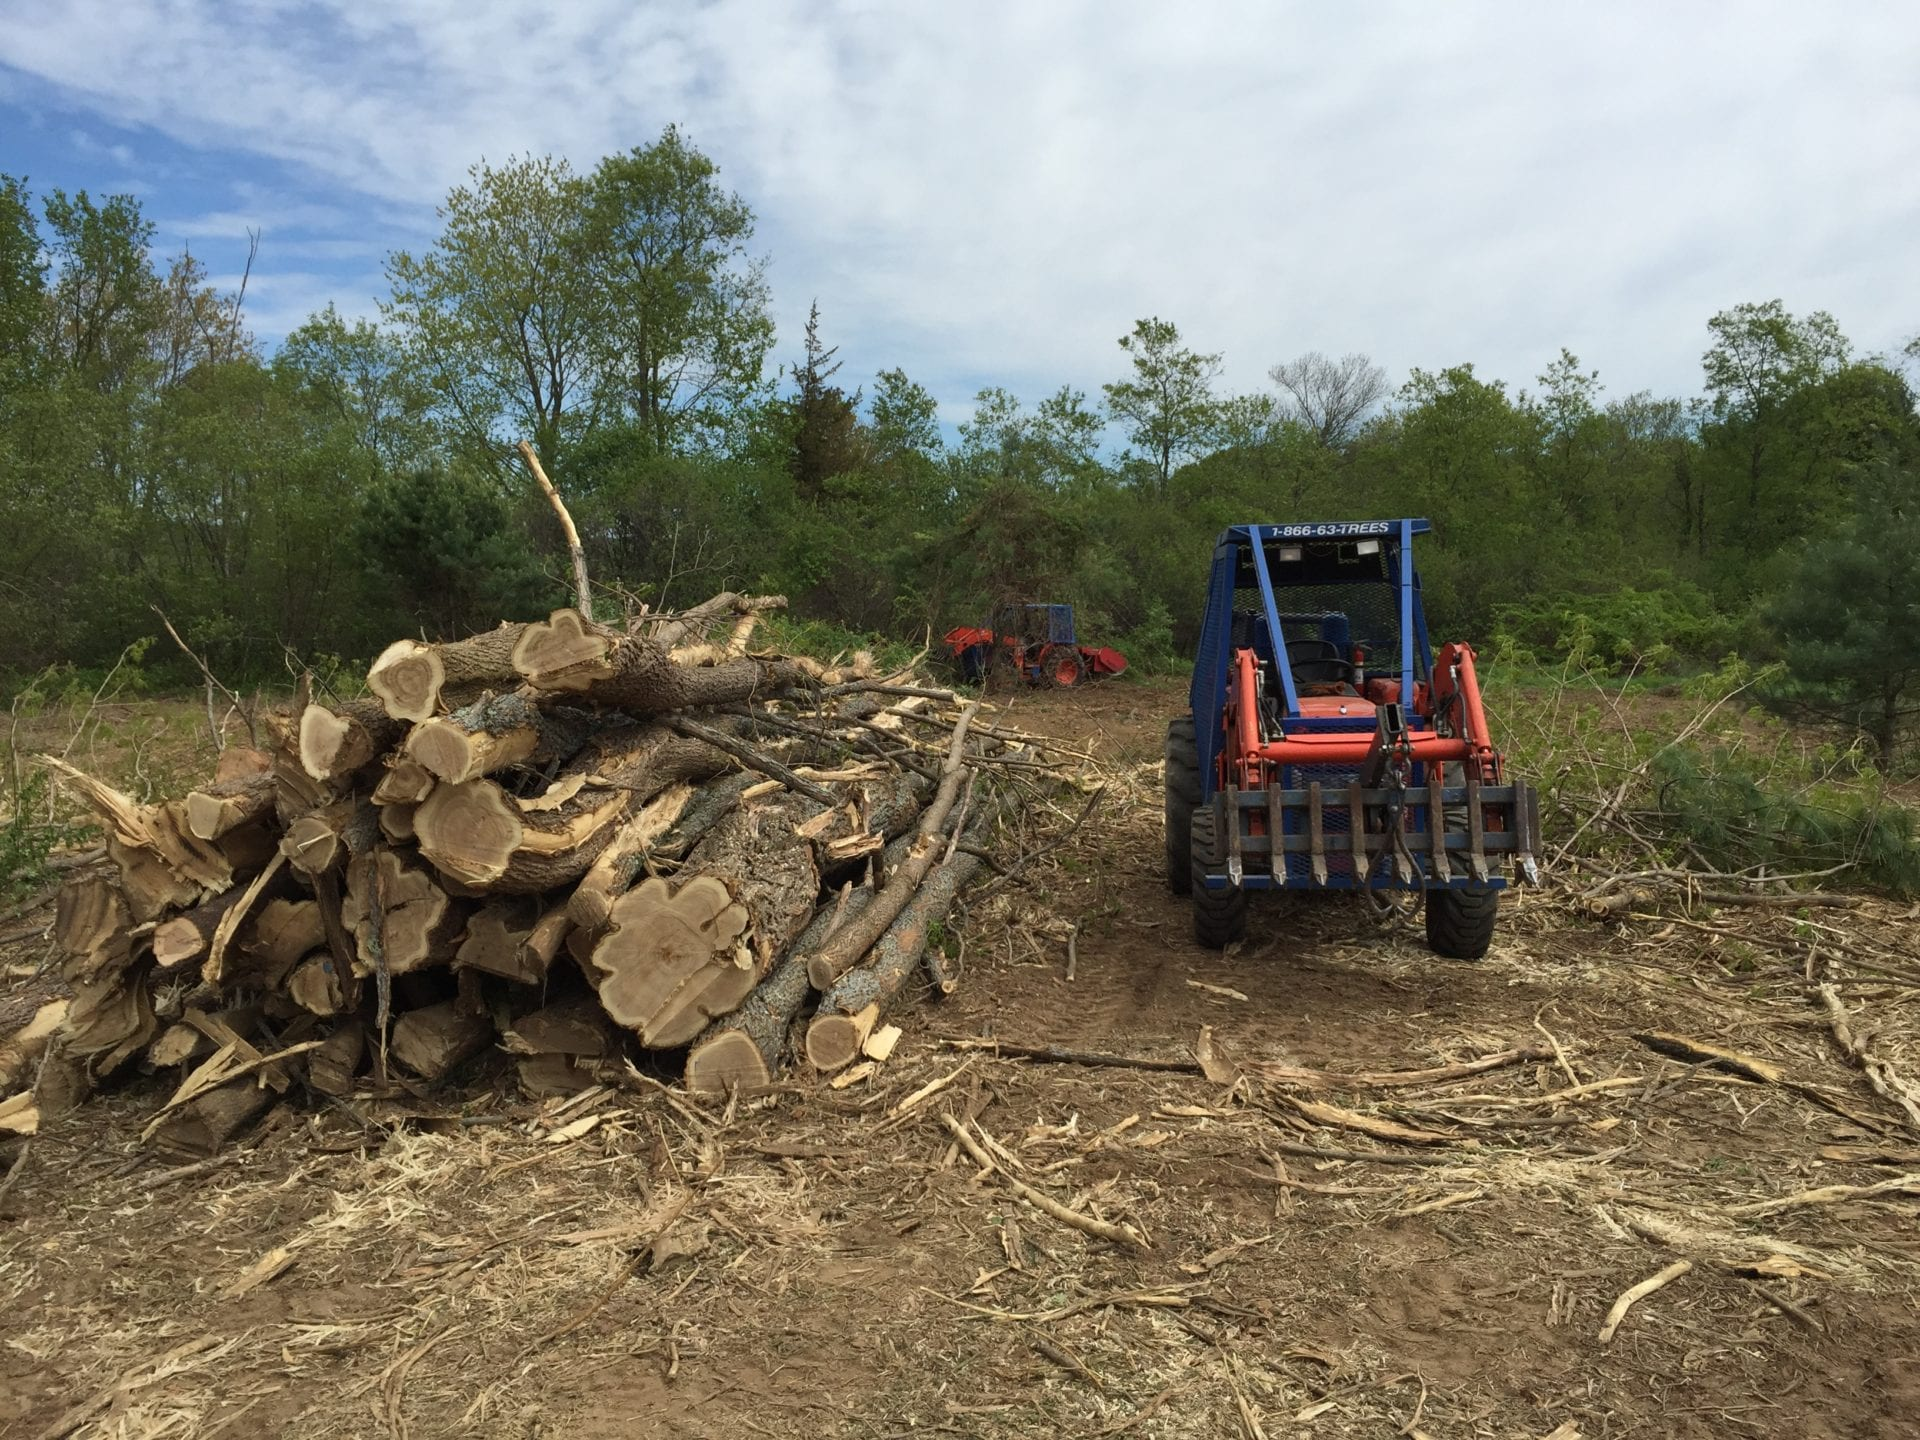 Mechanical Control of Invasive Shrubs on Oyster River Forest